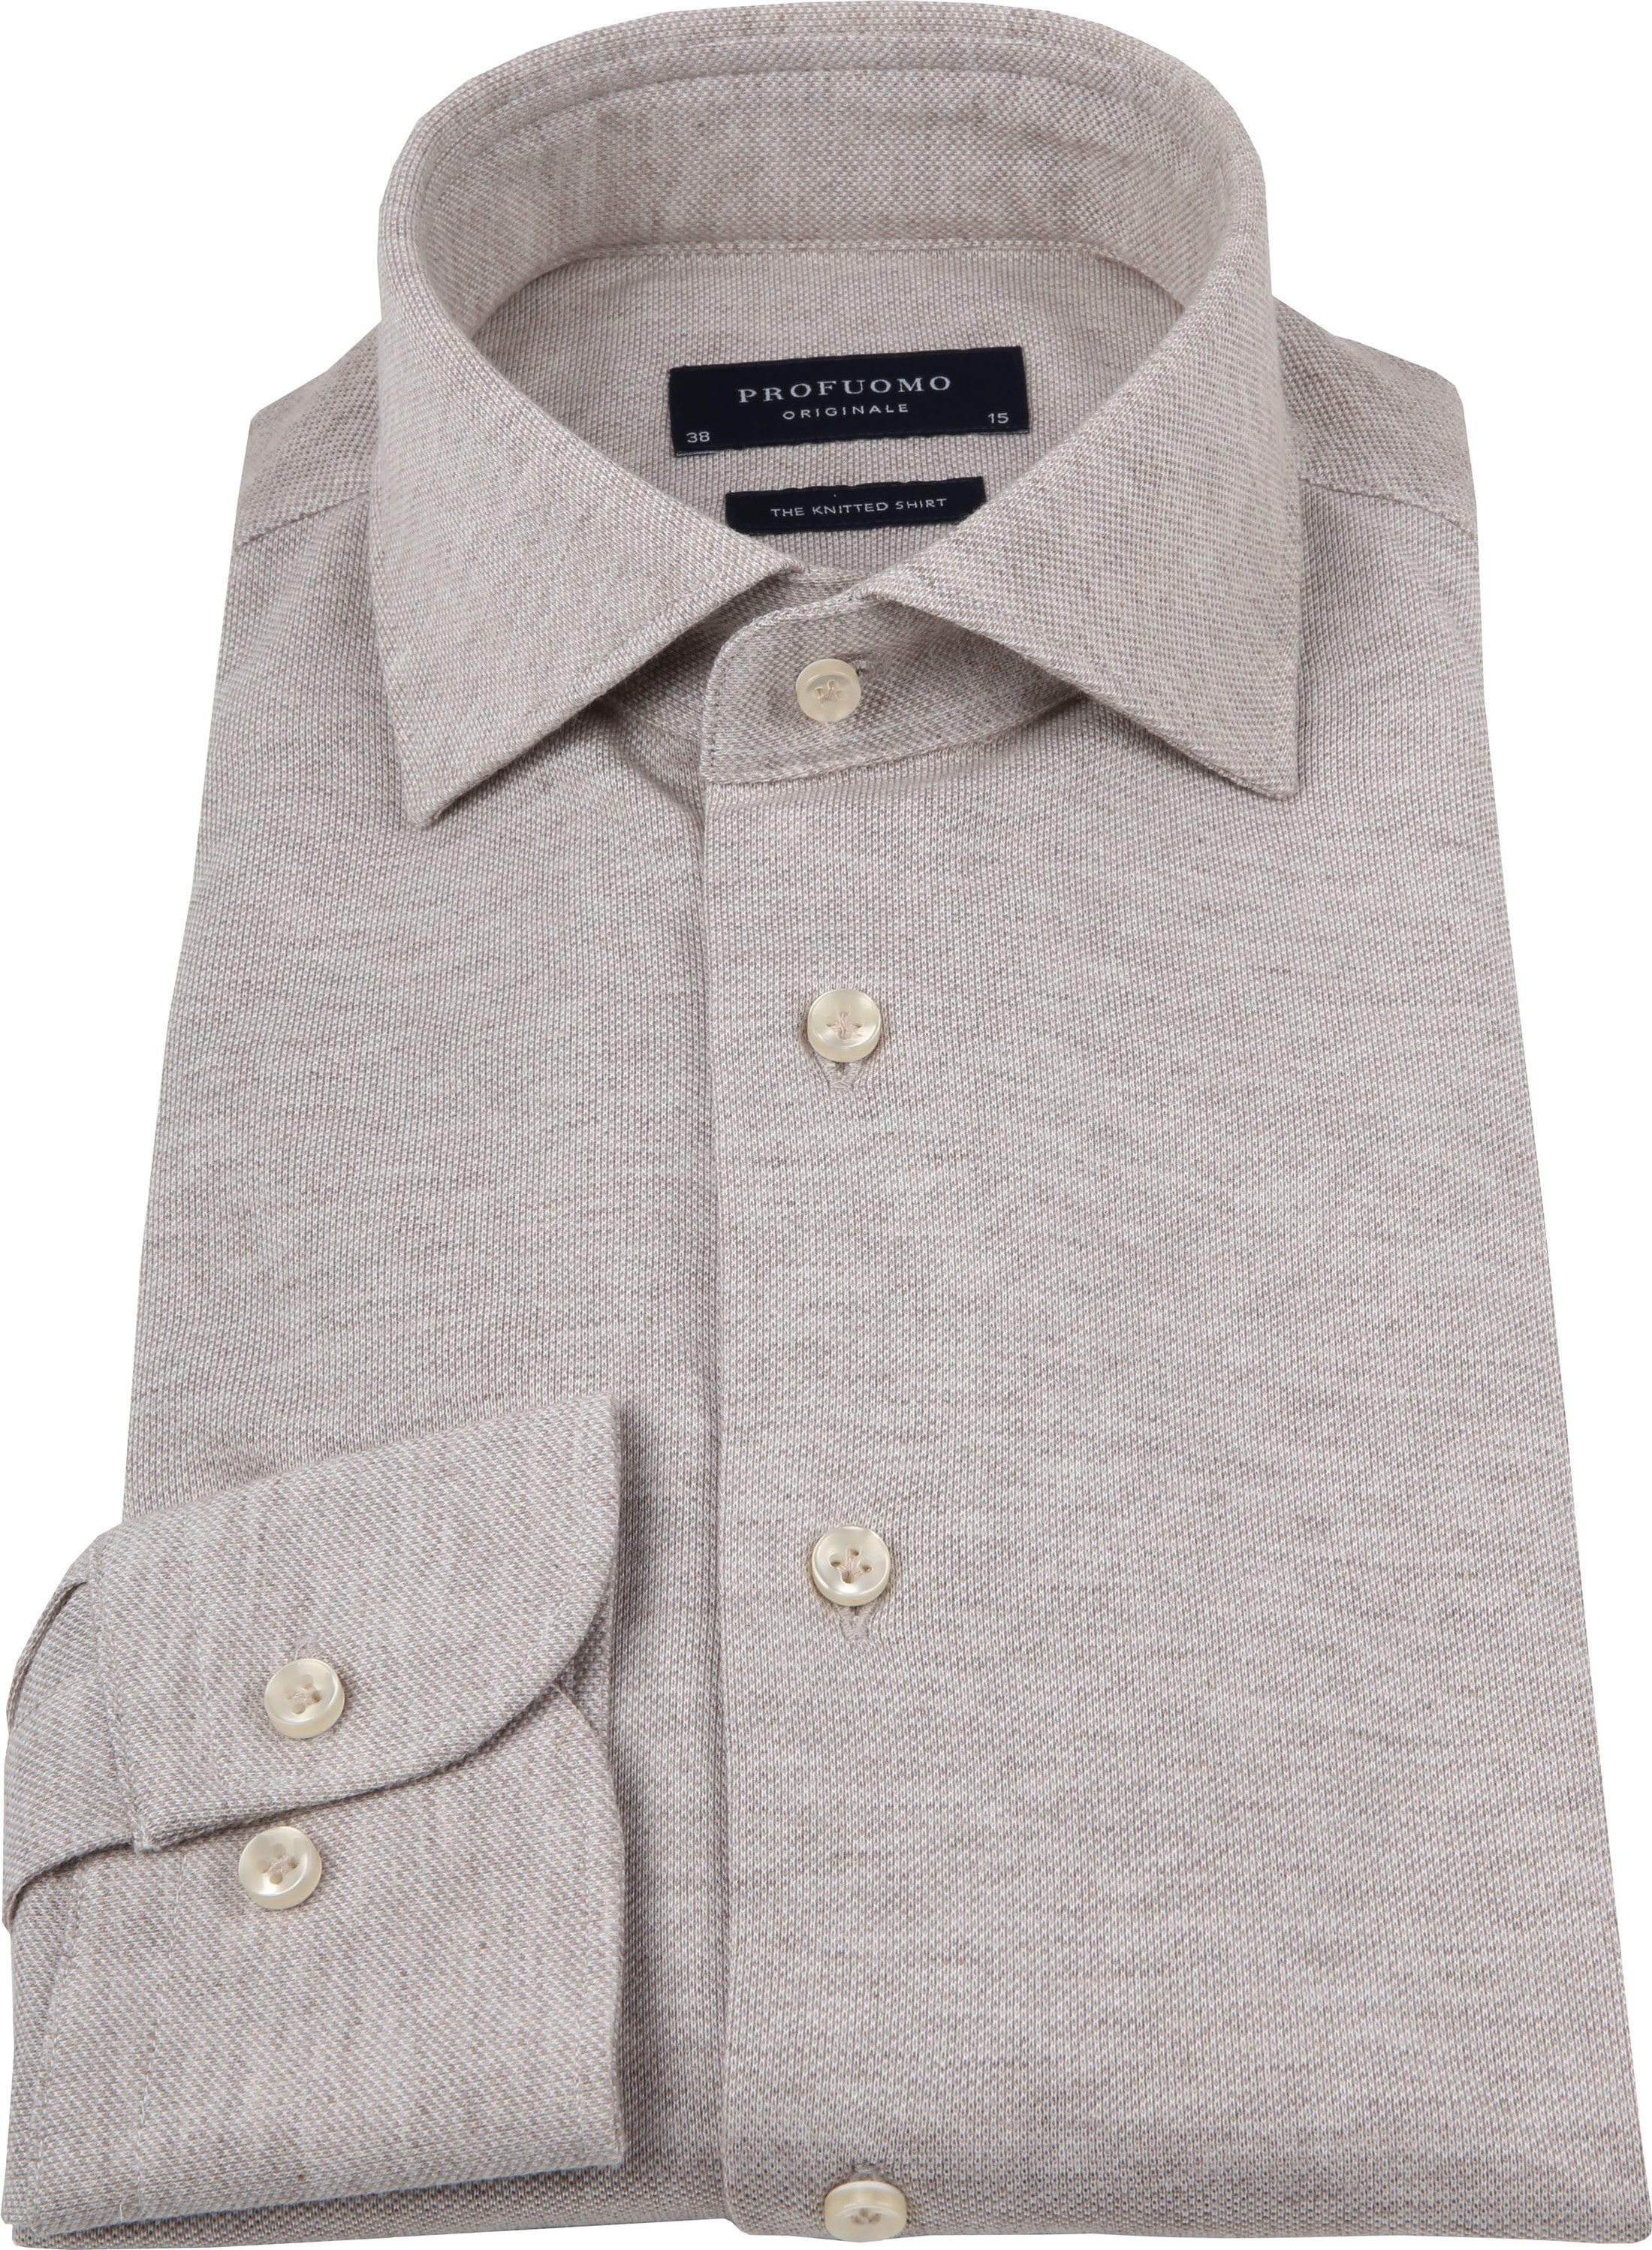 Profuomo Shirt Knitted Beige foto 2